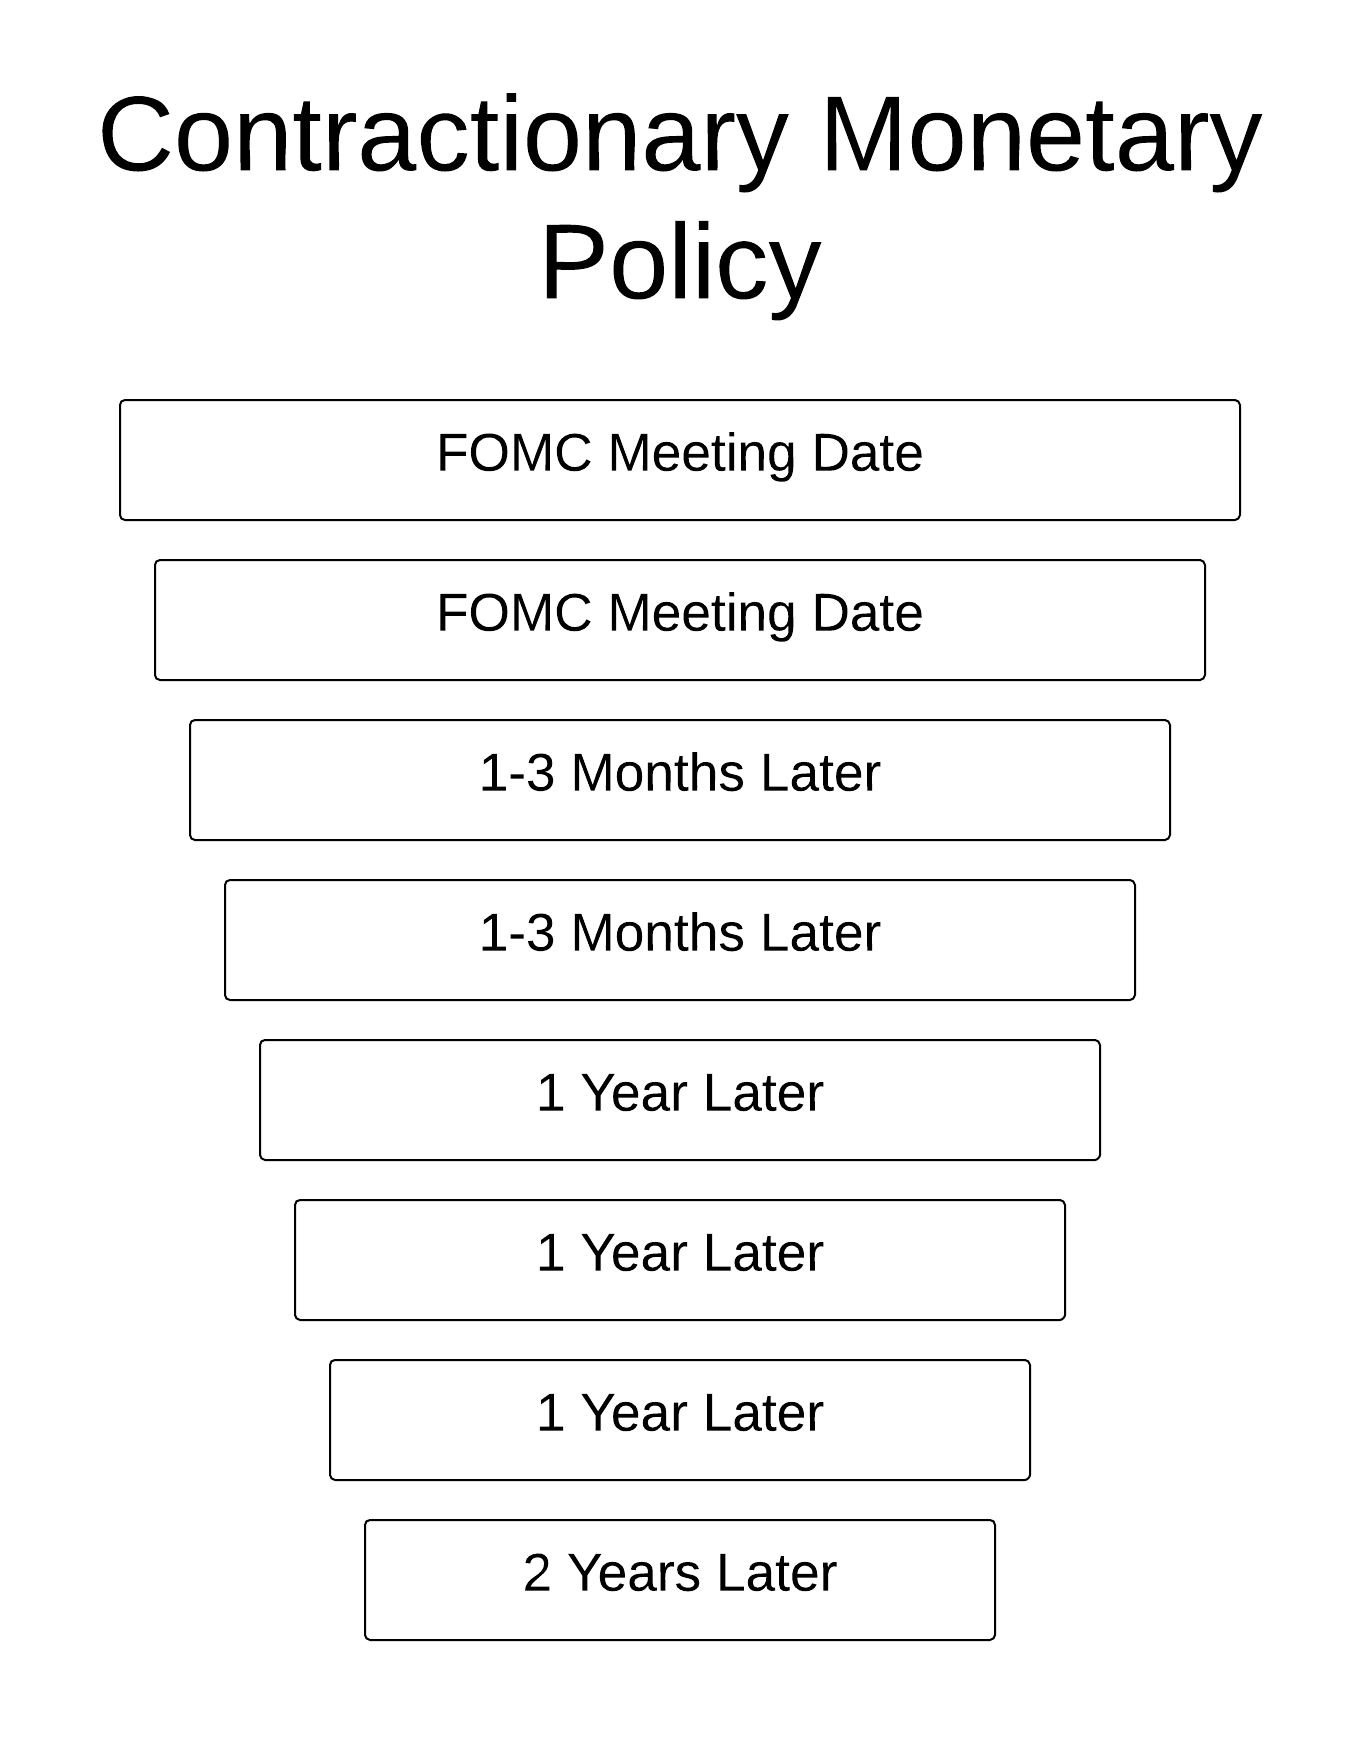 The diagram summarizes steps 1 through 8, outlining the contractionary monetary policy. The Contractionary Monetary Policy Transmission include the following eight steps: step 1, The Fed raises the federal funds rate (after the FOMC Meeting Date), step 2, Other short-term interest rates rise and the exchange rate rises (after the FOMC Meeting Date), step 3, The quantity of money and supply of loanable funds decrease (after 1 to 3 Months), step 4, The long-term real interest rate rises (after 1 to 3 Months), step 5, Consumption expenditure, investment, and net exports decrease (after 1 Year), step 6, Aggregate demand decreases (after 1 Year), step 7, Real GDP growth rate decreases (after 1 Year) — which represents the cost associated with this policy, and step 8, Inflation rate decreases (after 2 Years) — which represents the gain associated with this policy.